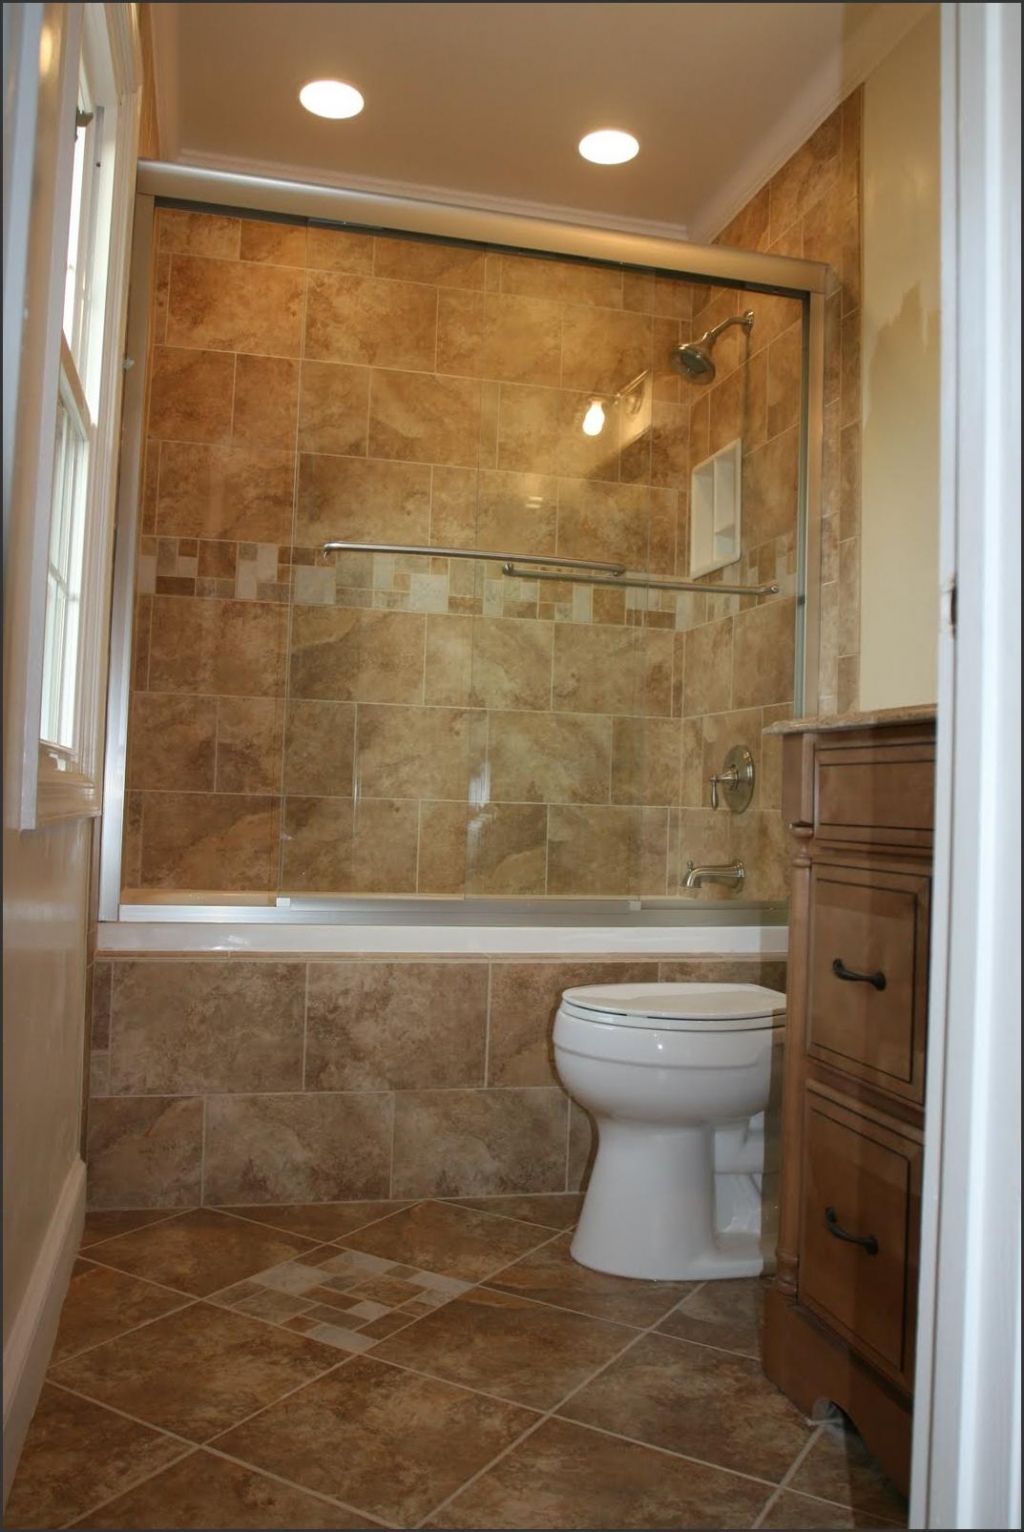 Tiny Bathroom With Oak Vanity And Closed Bathroom Shower Ideas On Marble Flooring